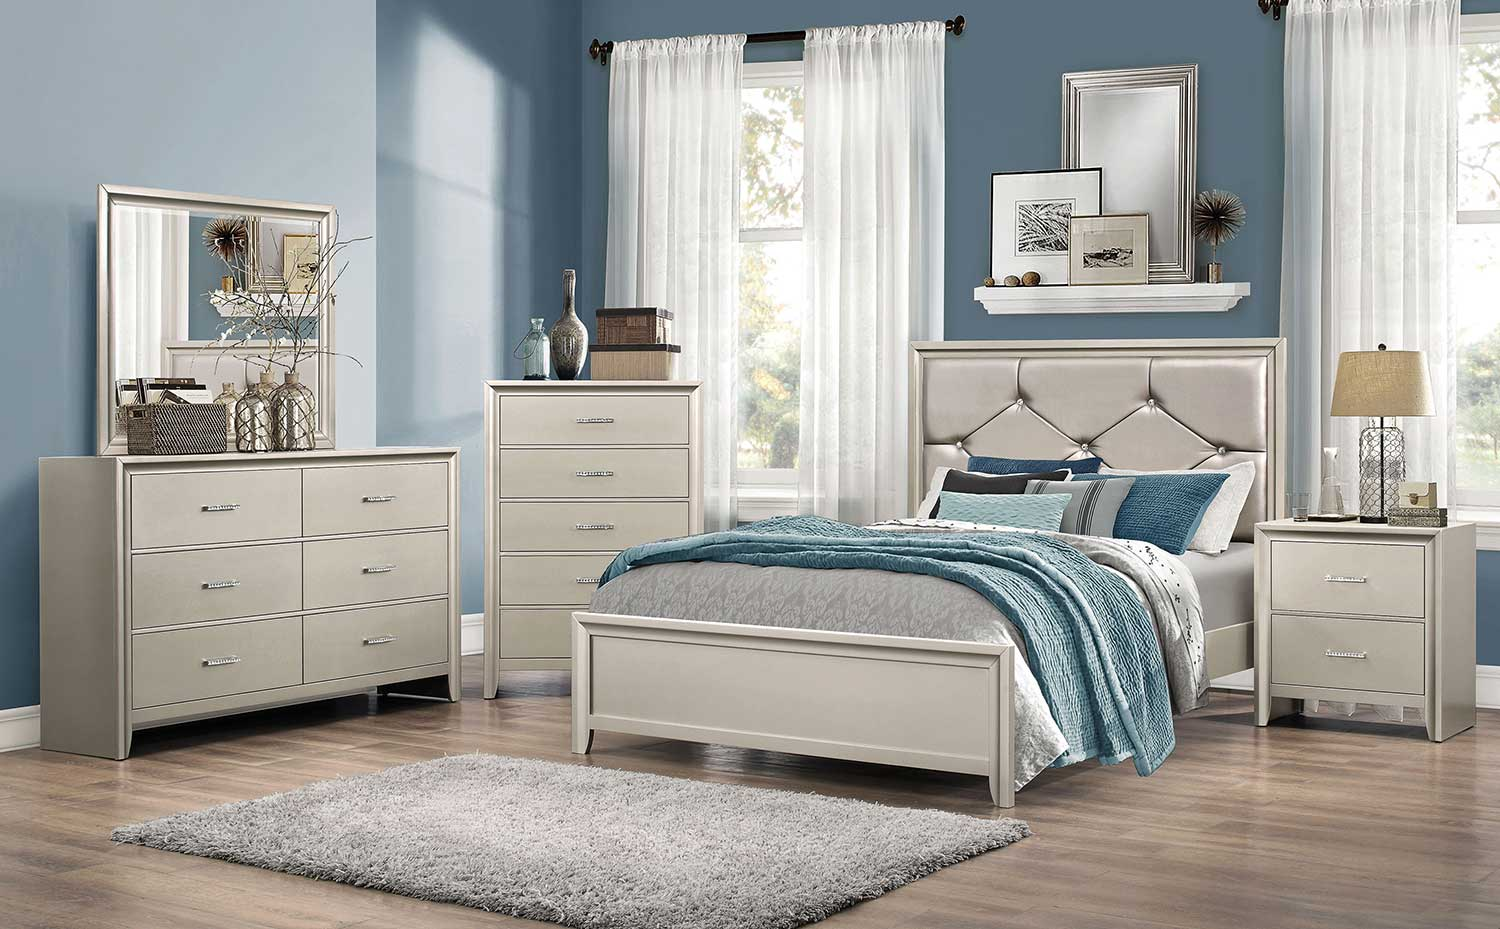 Coaster Lana Upholstered Bedroom Set Silver BEDROOM SET at Homelemen